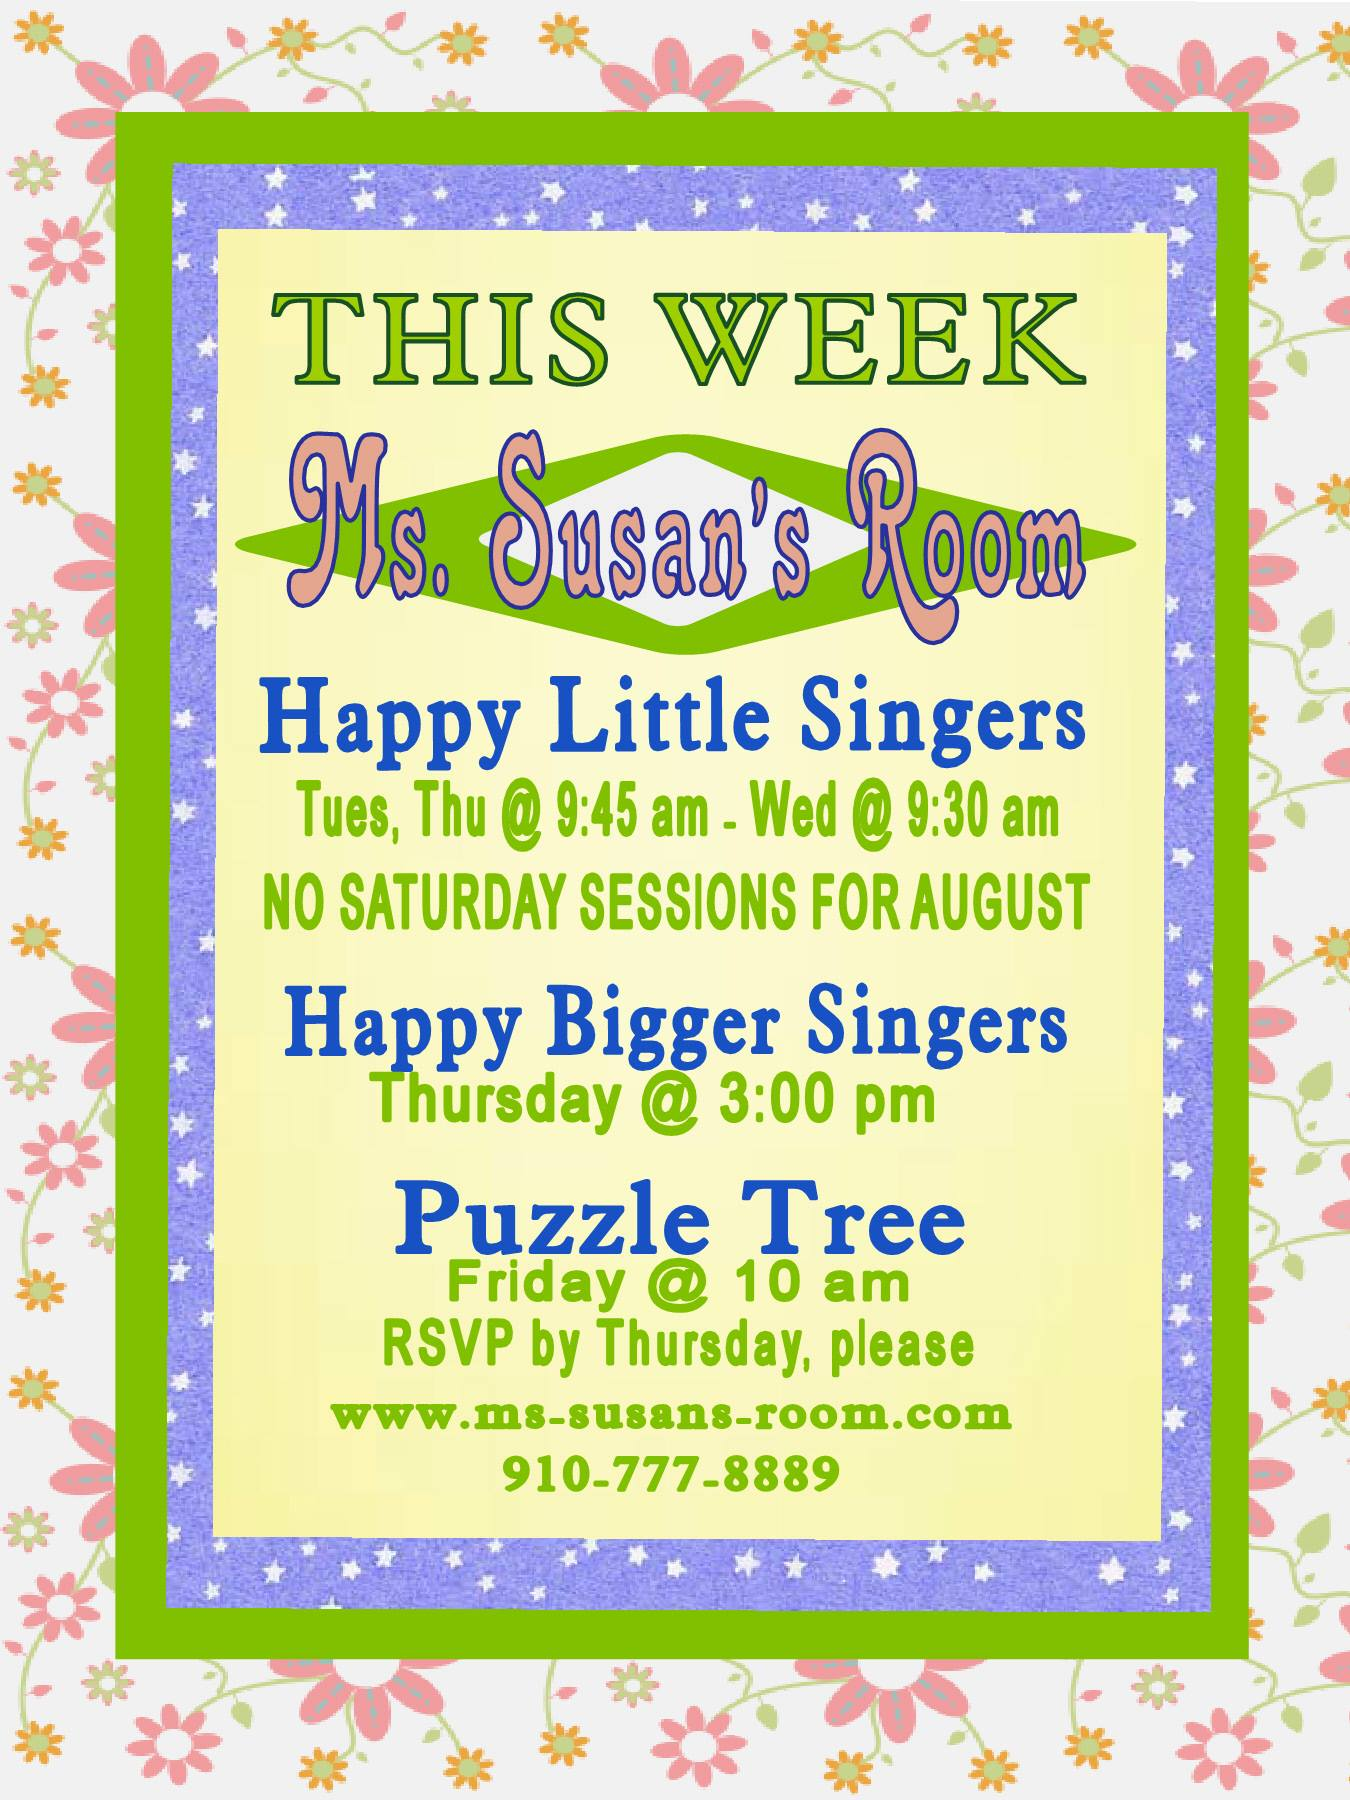 THURSDAY--Happy Bigger Singers